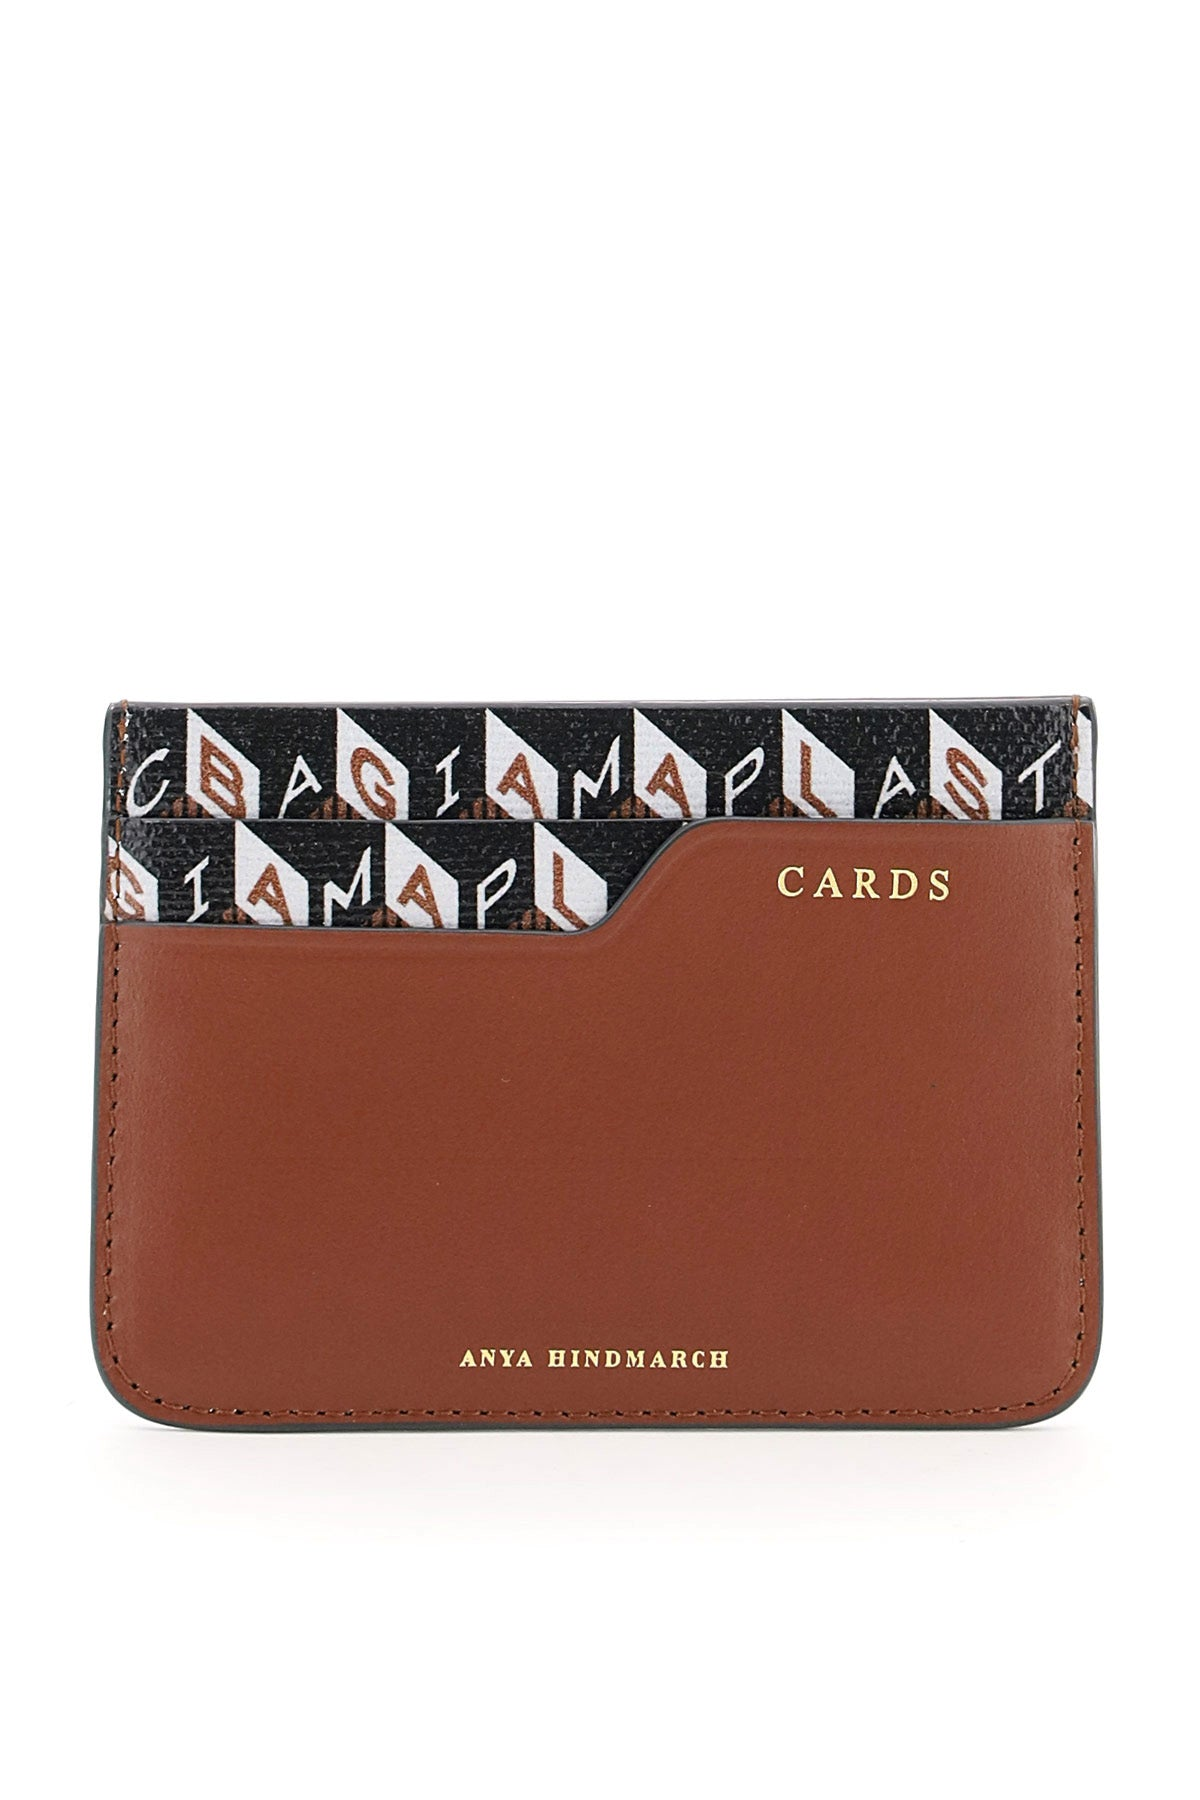 Anya Hindmarch ANYA HINDMARCH I AM A PLASTIC BAG CARDHOLDER